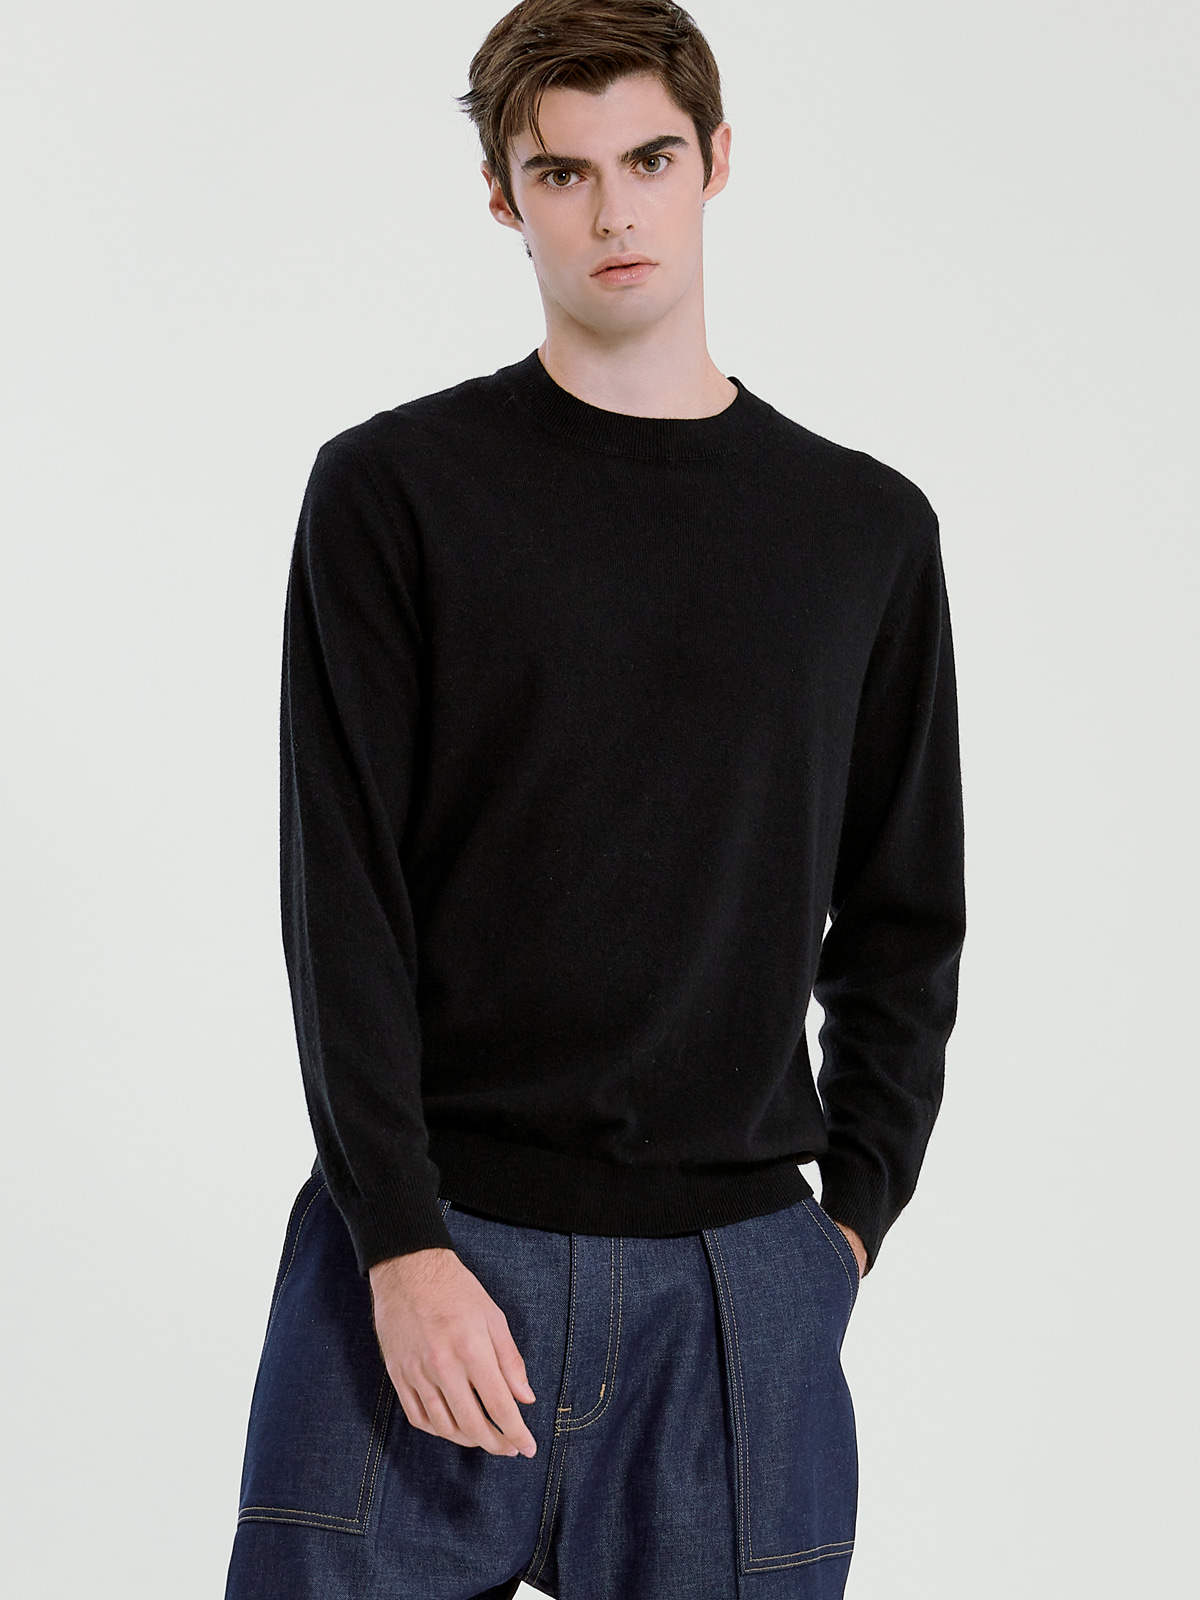 Cashmere Blended Crewneck Knit_Black